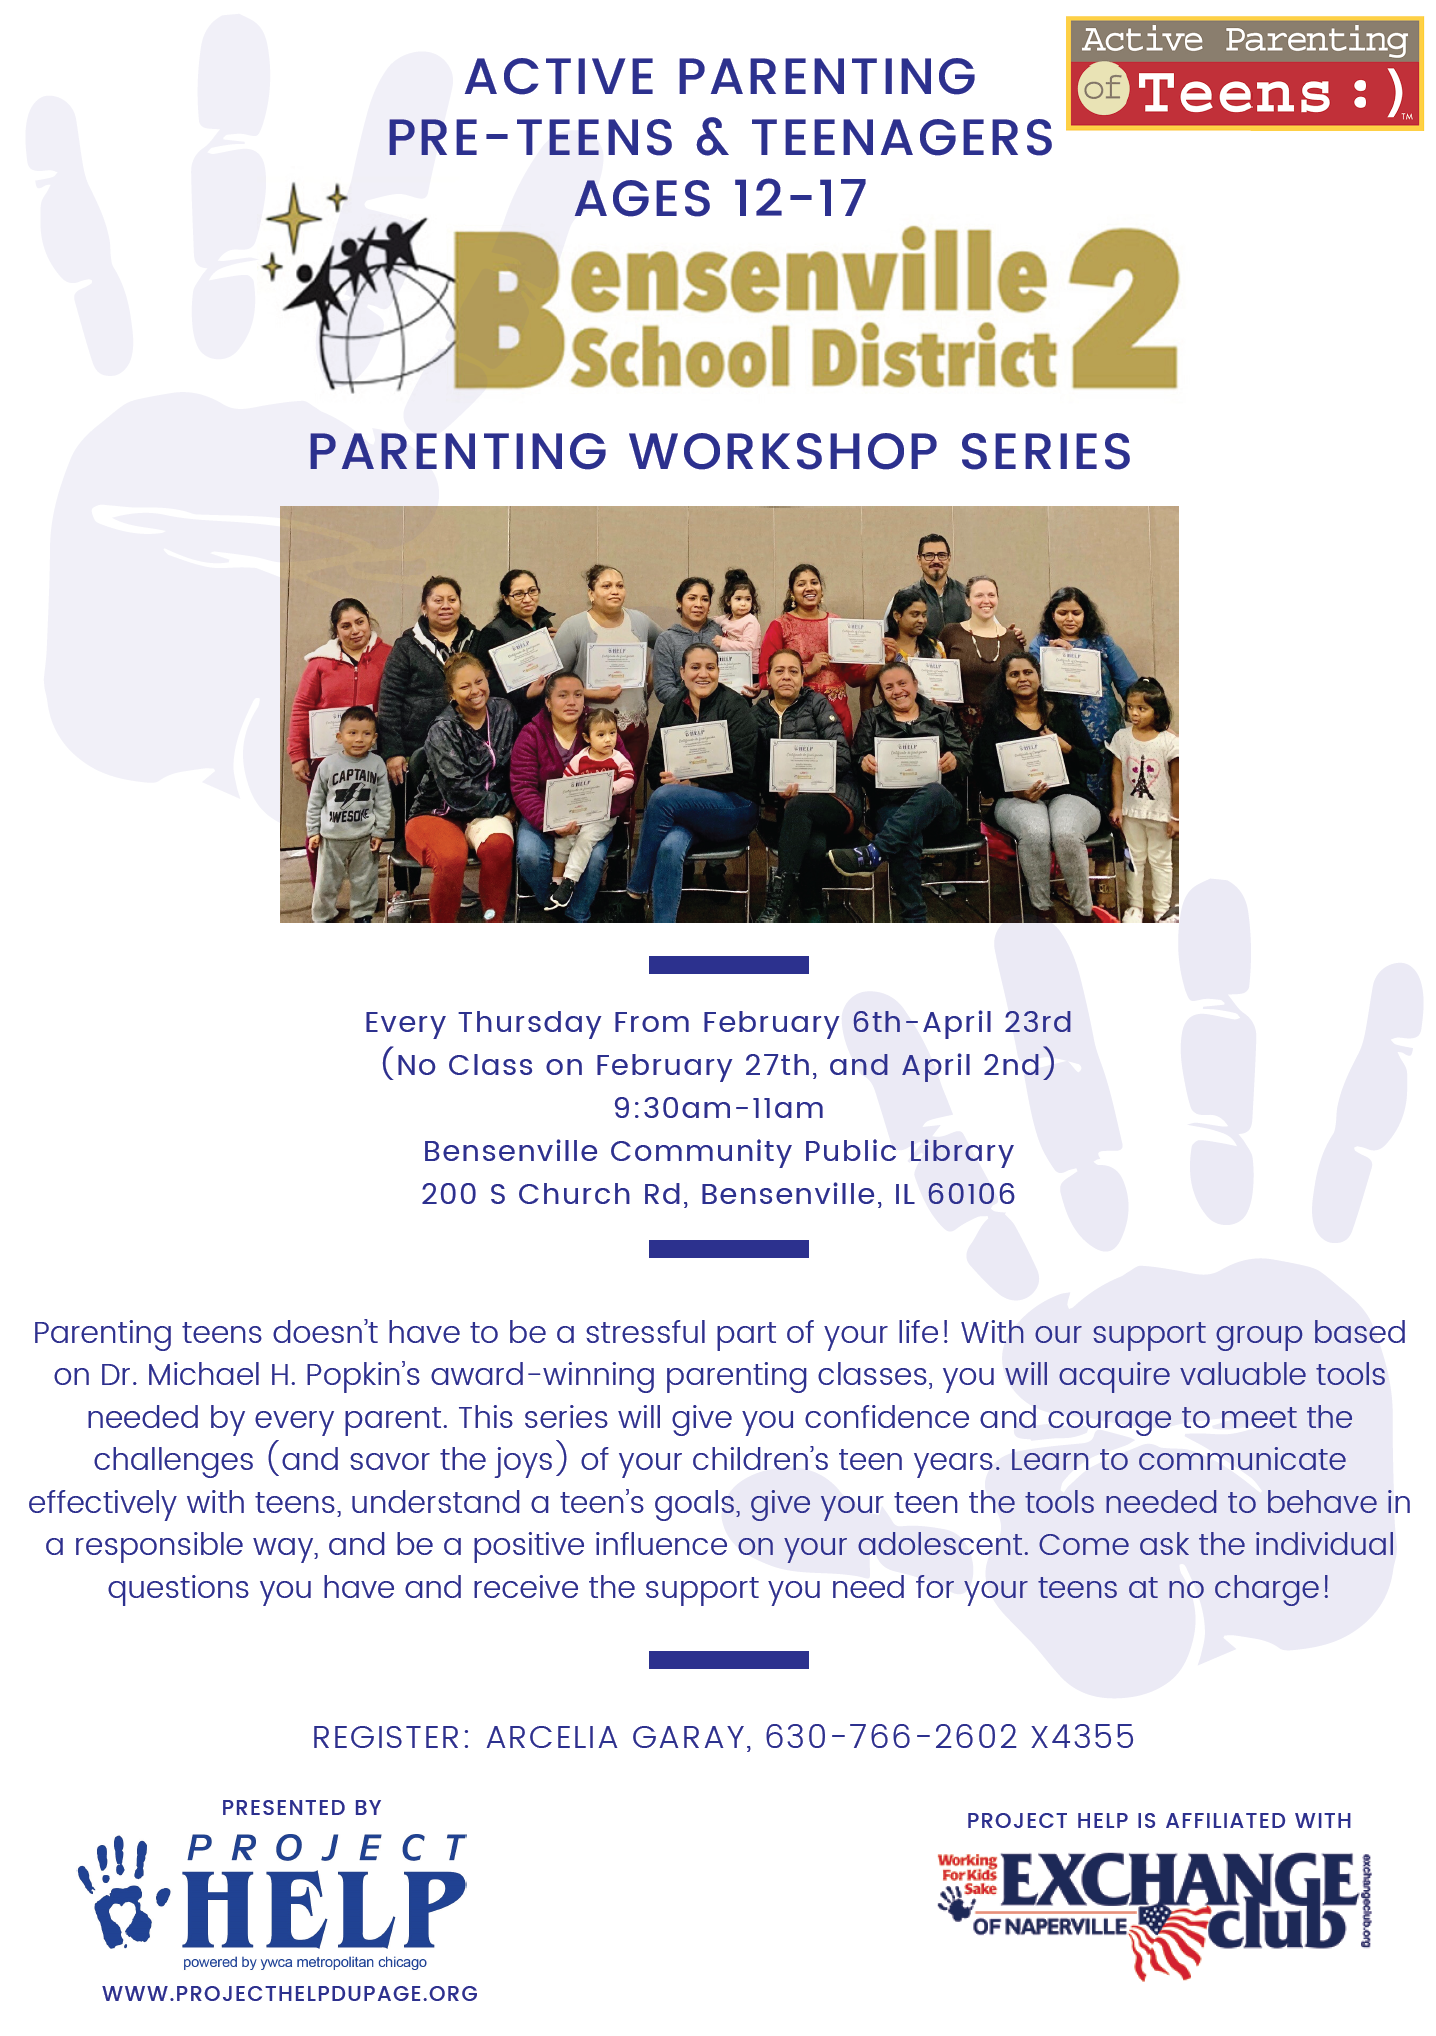 Bensenville Active Parenting Pre Teens and Teenagers Workshop Series @ Bensenville Community Public Library